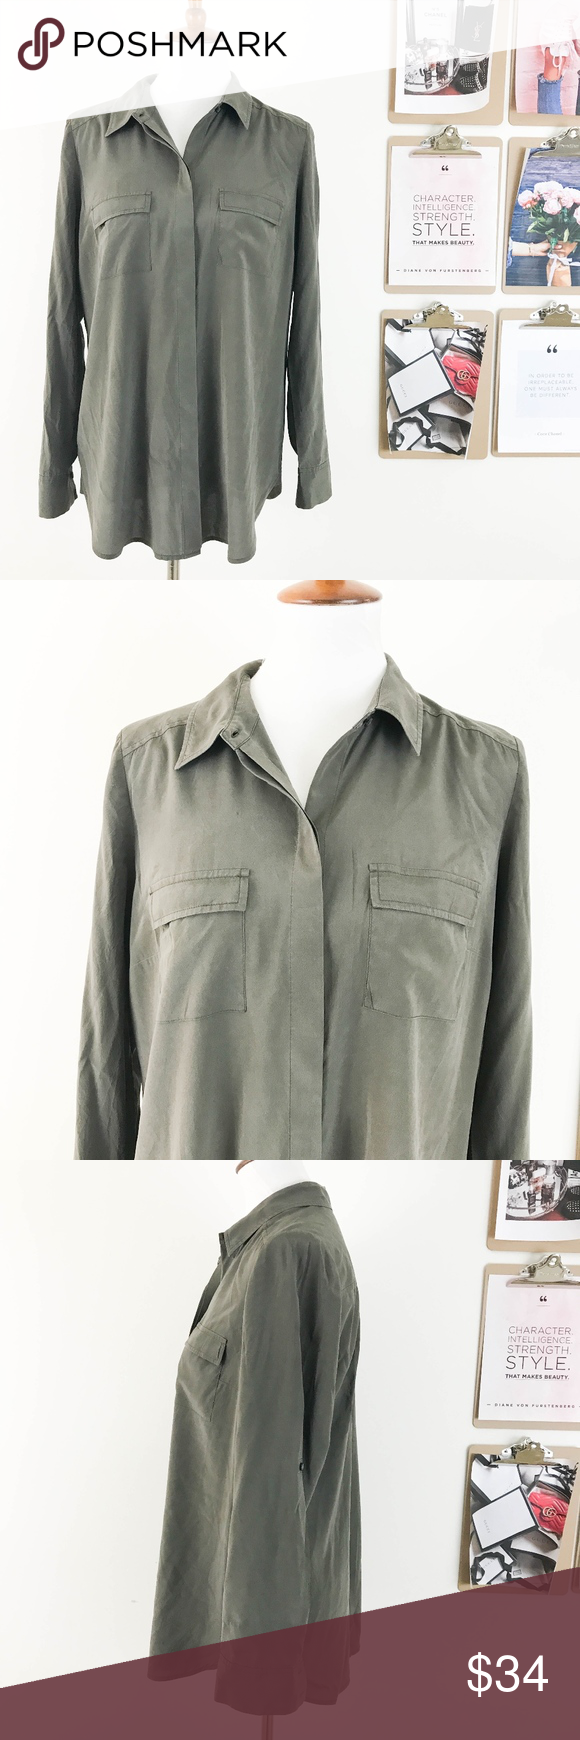 b033f993026afe Ann Taylor Silk Blouse Size 12 Button Down Green Ann Taylor Women's Silk  Blouse Size 12